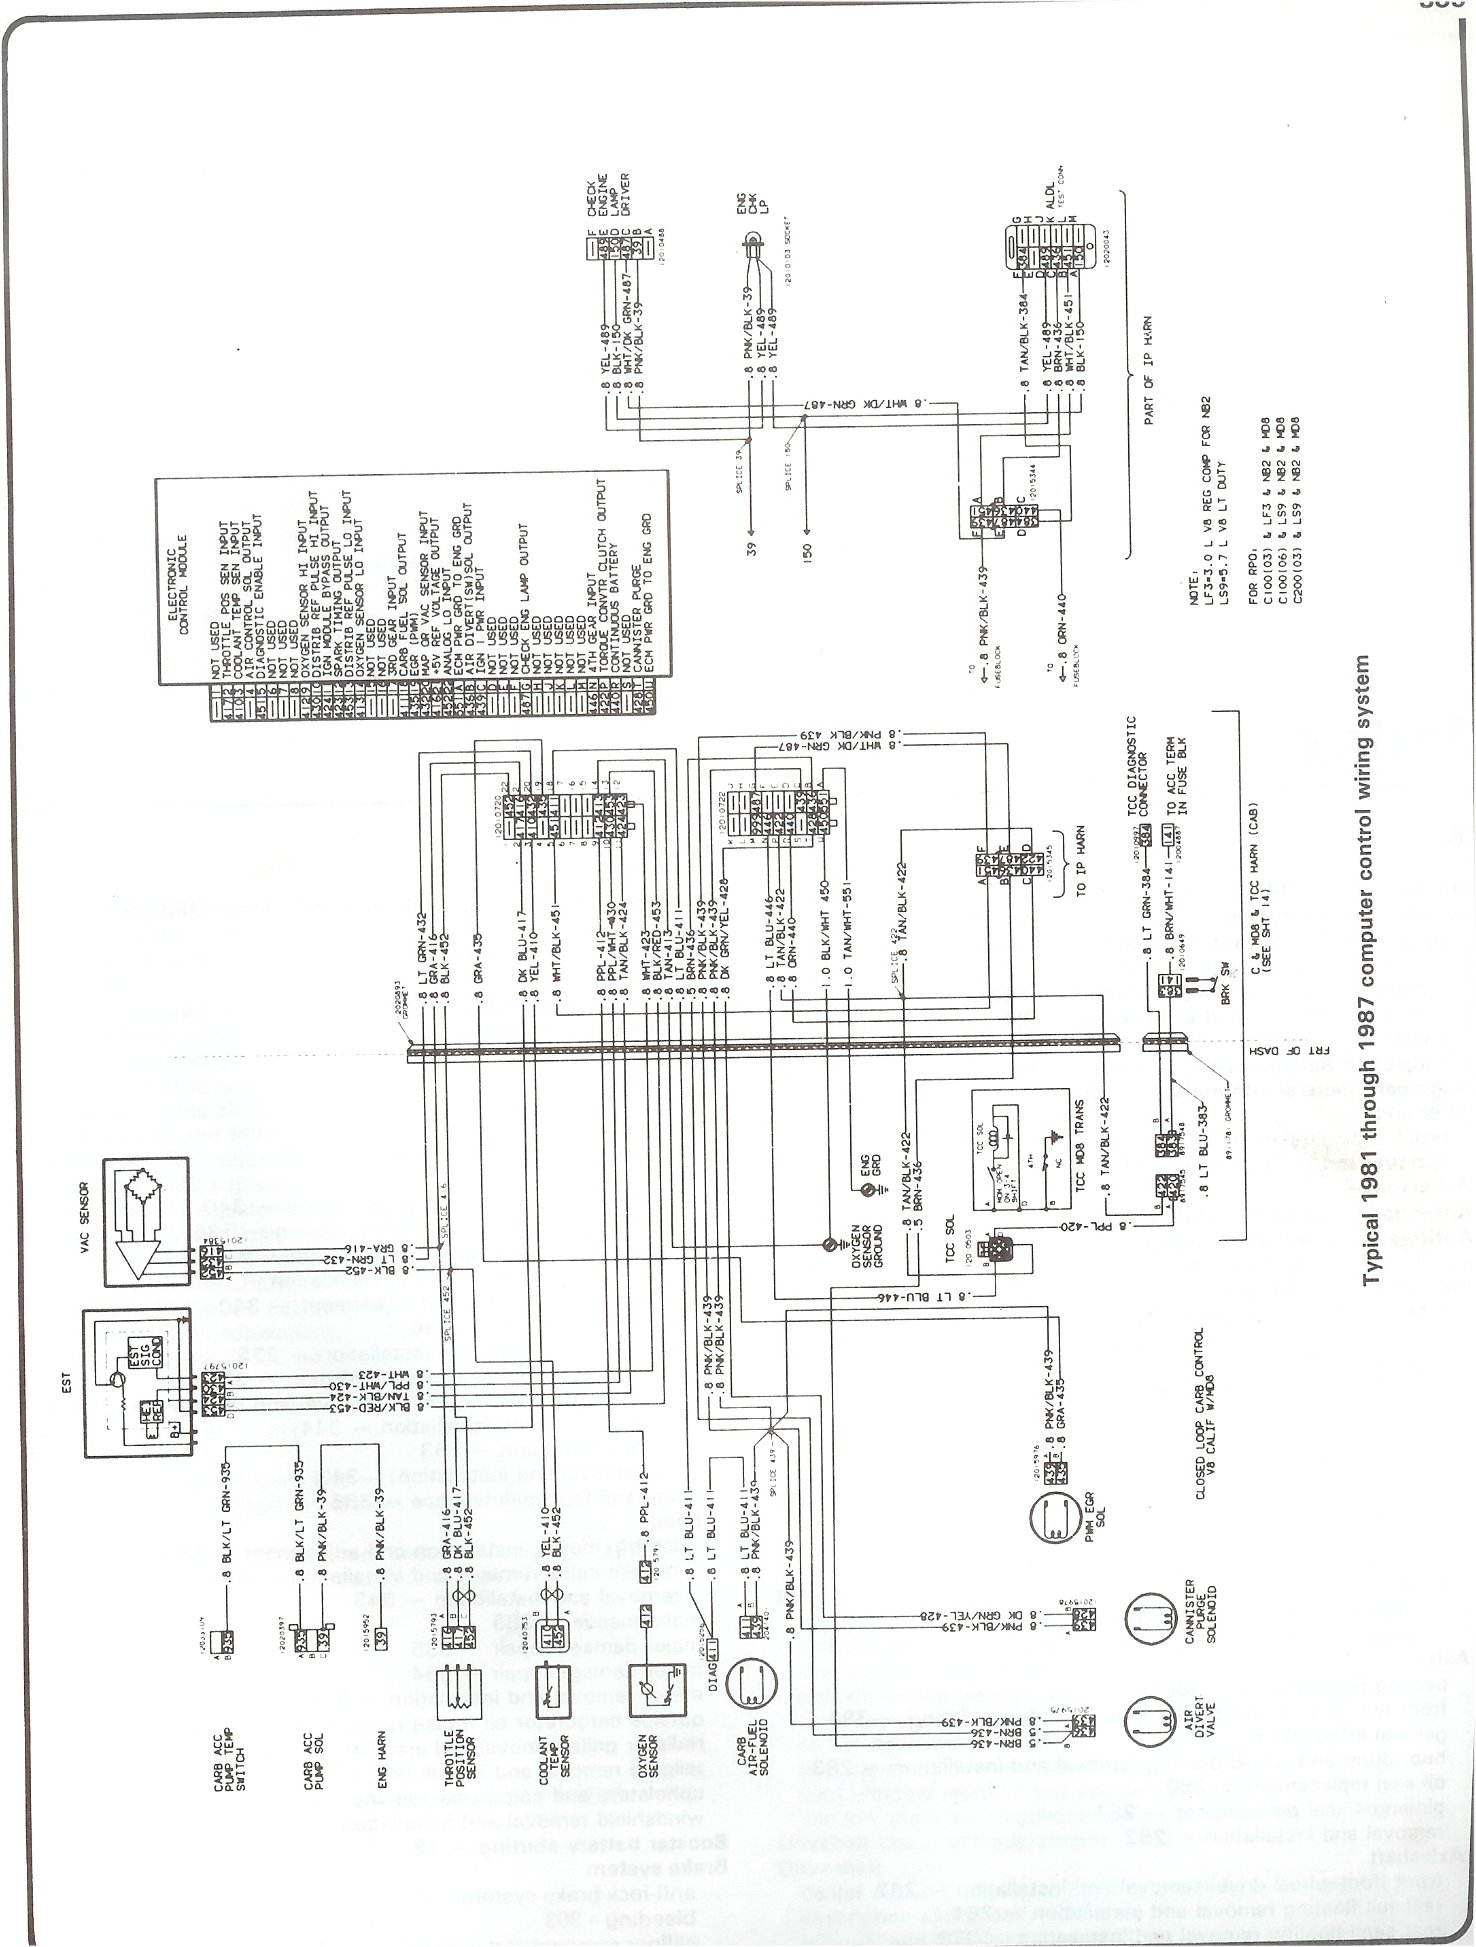 1986 wiring diagram chevy v8